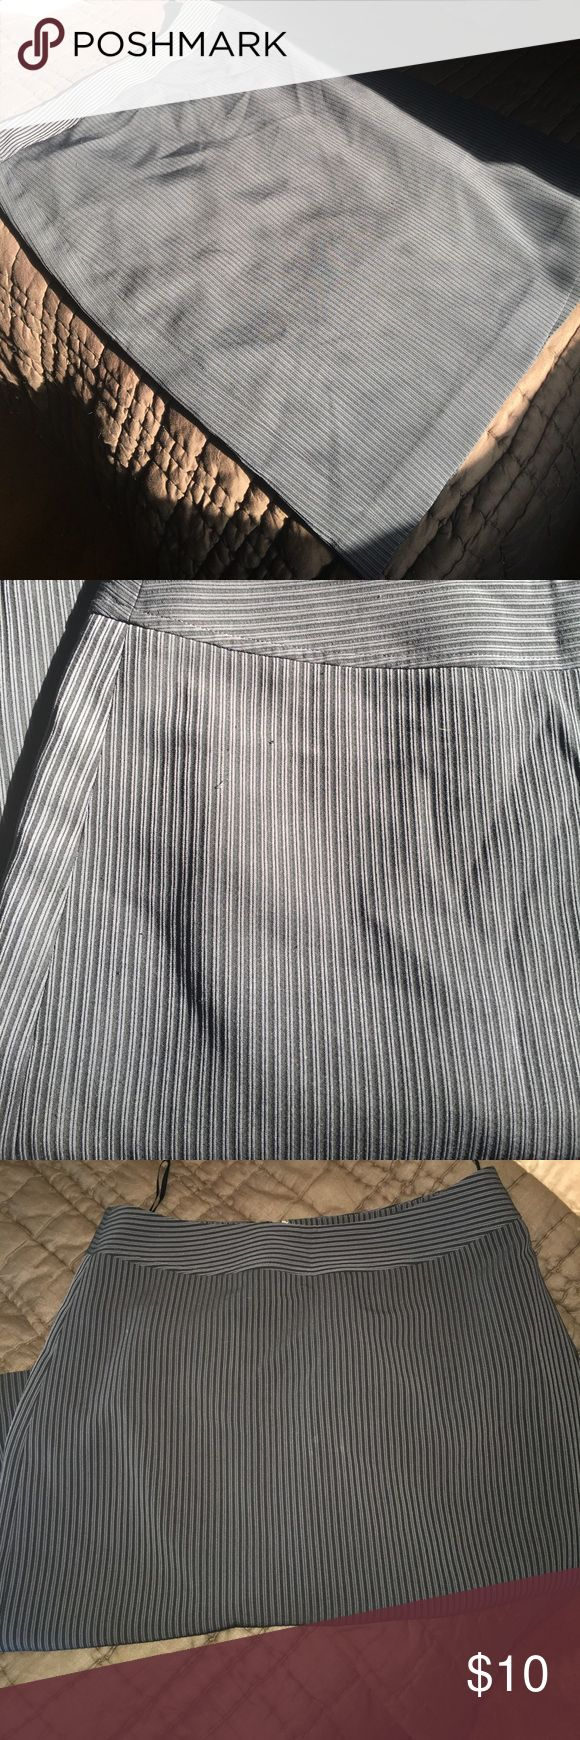 Lined blueish black striped pencil skirt Georgiou studios pencil skirt. Lined good used condition great for office wear, size 4 georgiou Skirts Pencil